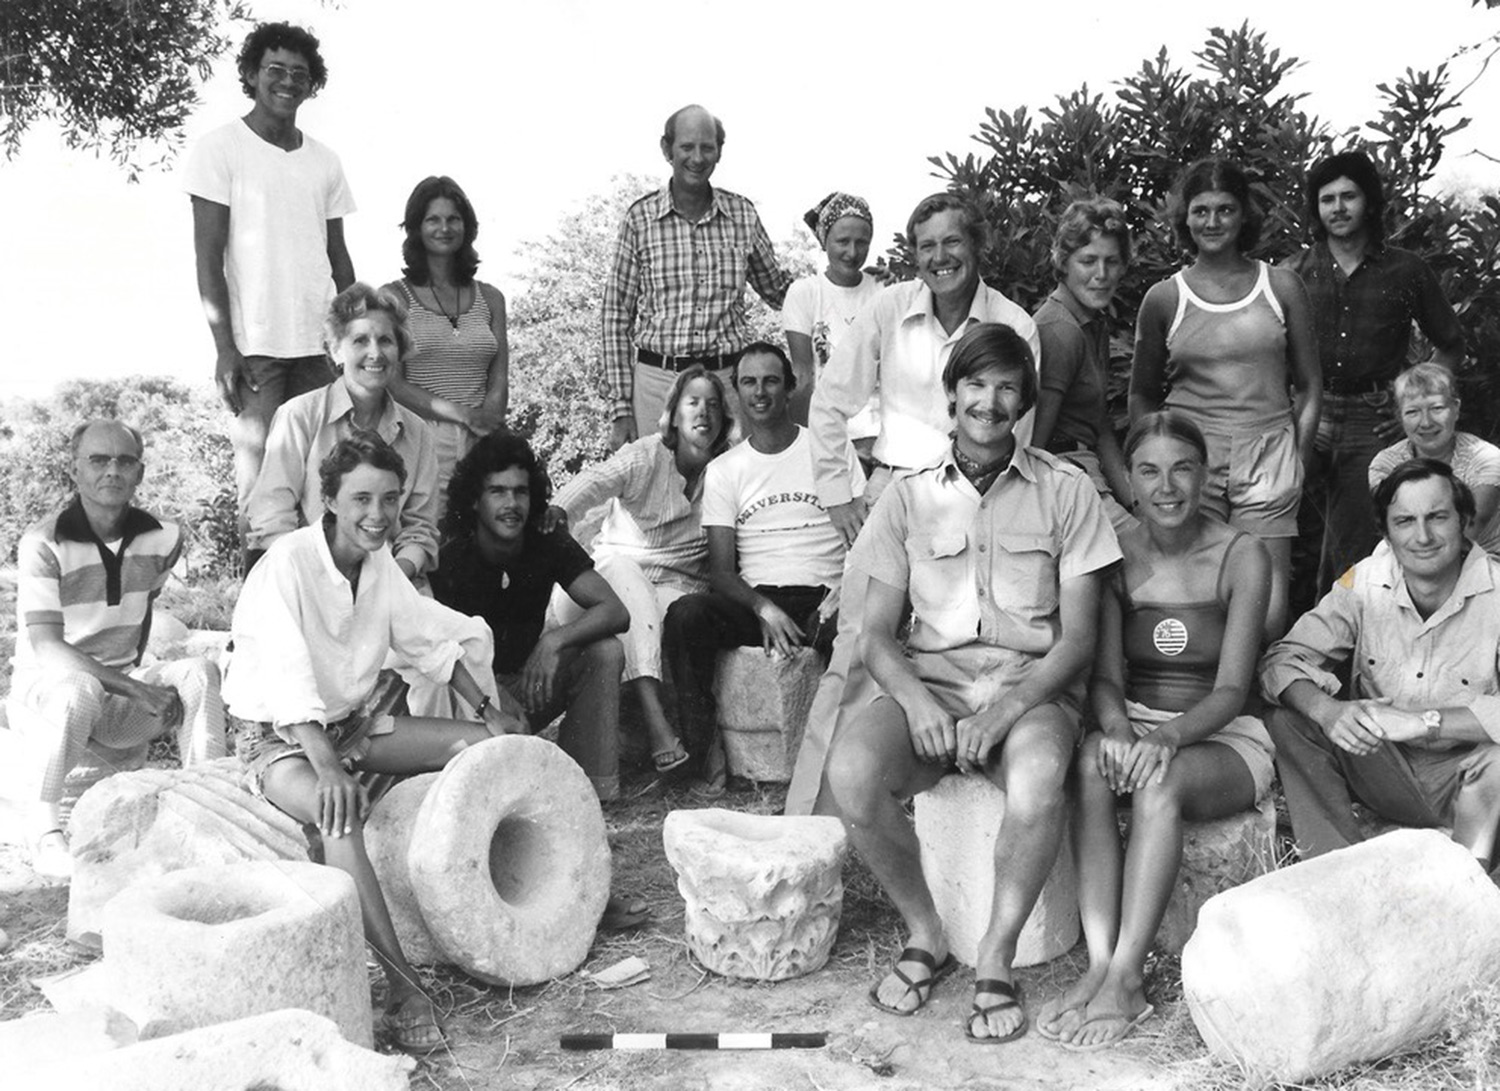 The Kent State dig crew in Cyprus in 1976 or 1977. Holly Morris is in the middle, wearing a white shirt. Jim Carpenter, professor in the Classics, the director of the dig is the tall guy in the back (middle). Dr. John and Betty Parks are on the far left.